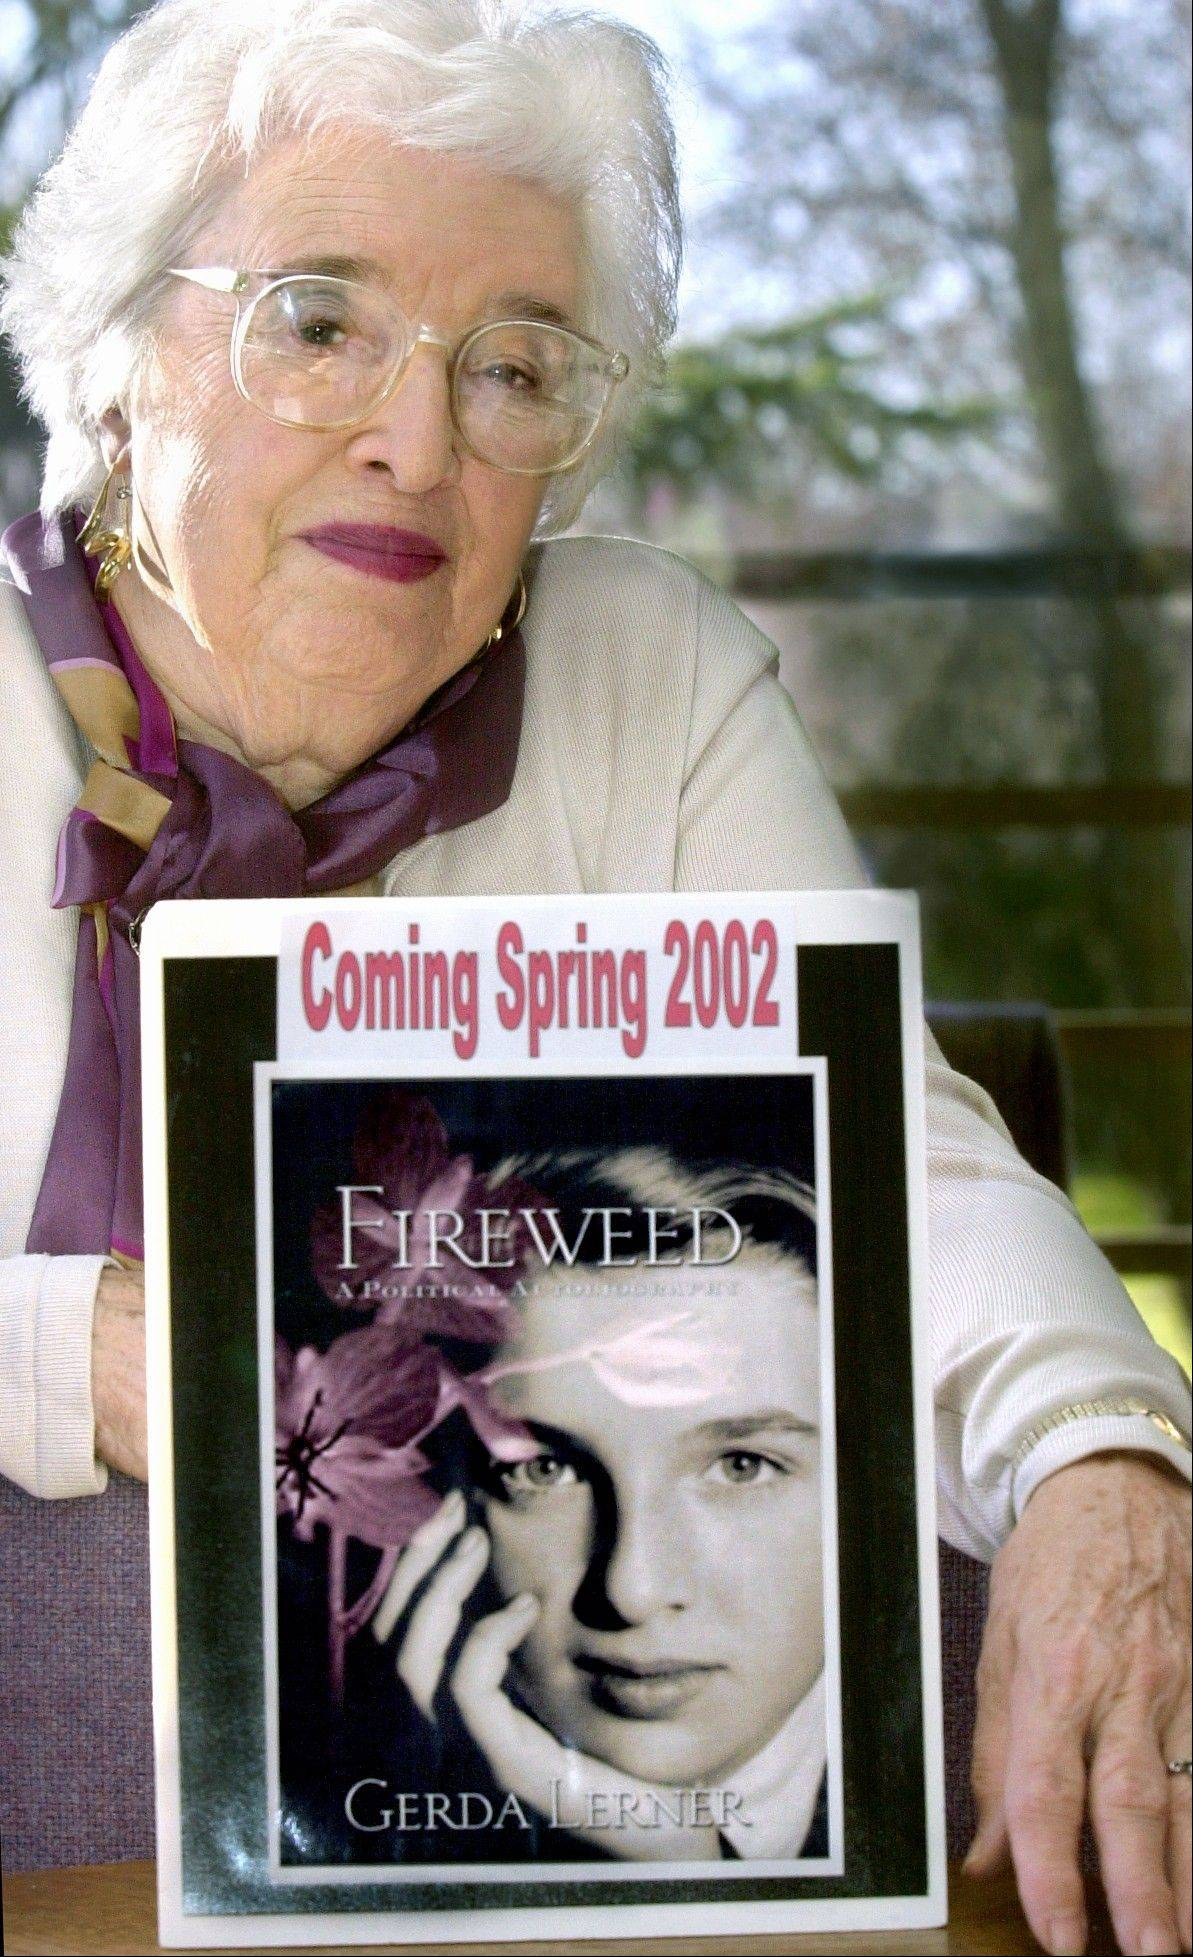 This 2001 photo shows Gerda Lerner, founder of University of Wisconsin-Madison�s graduate program in women�s history, with an image of her autobiography, Fireweed. Lerner, a founding member of the National Organization for Woman and a pioneer in the field of women�s history, has died at an assisted-living facility in Madison. She was 92.